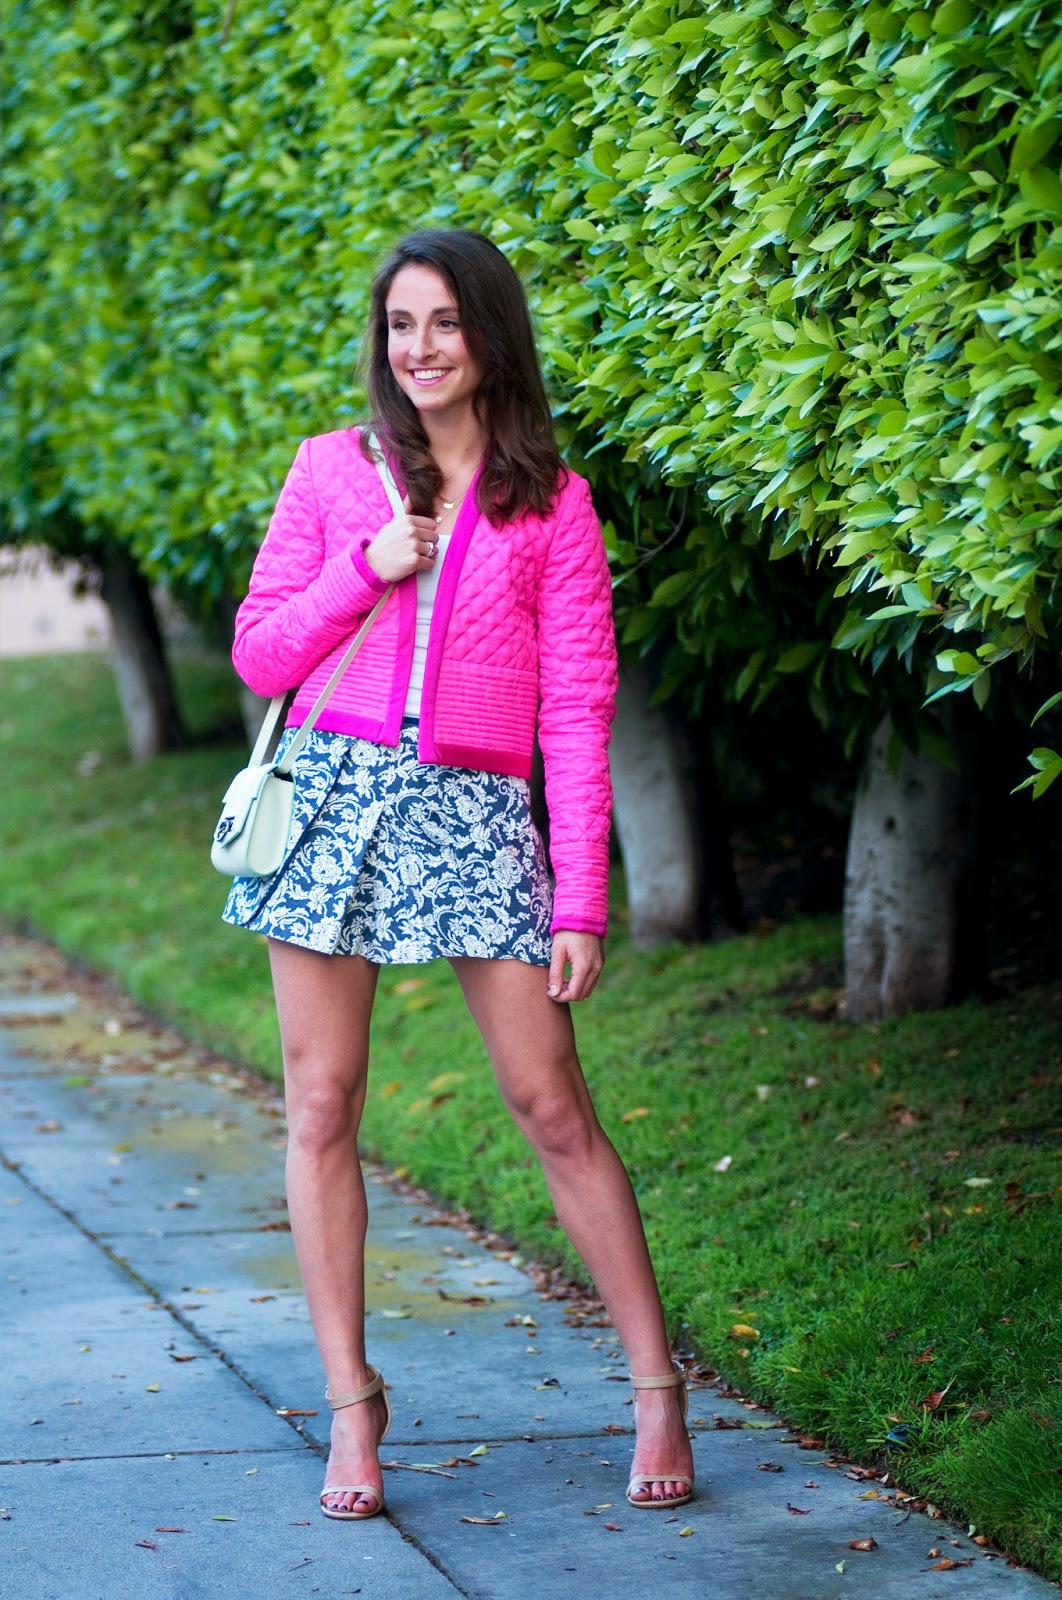 hot-pink-isabel-marant-jacket-with-floral-skirt